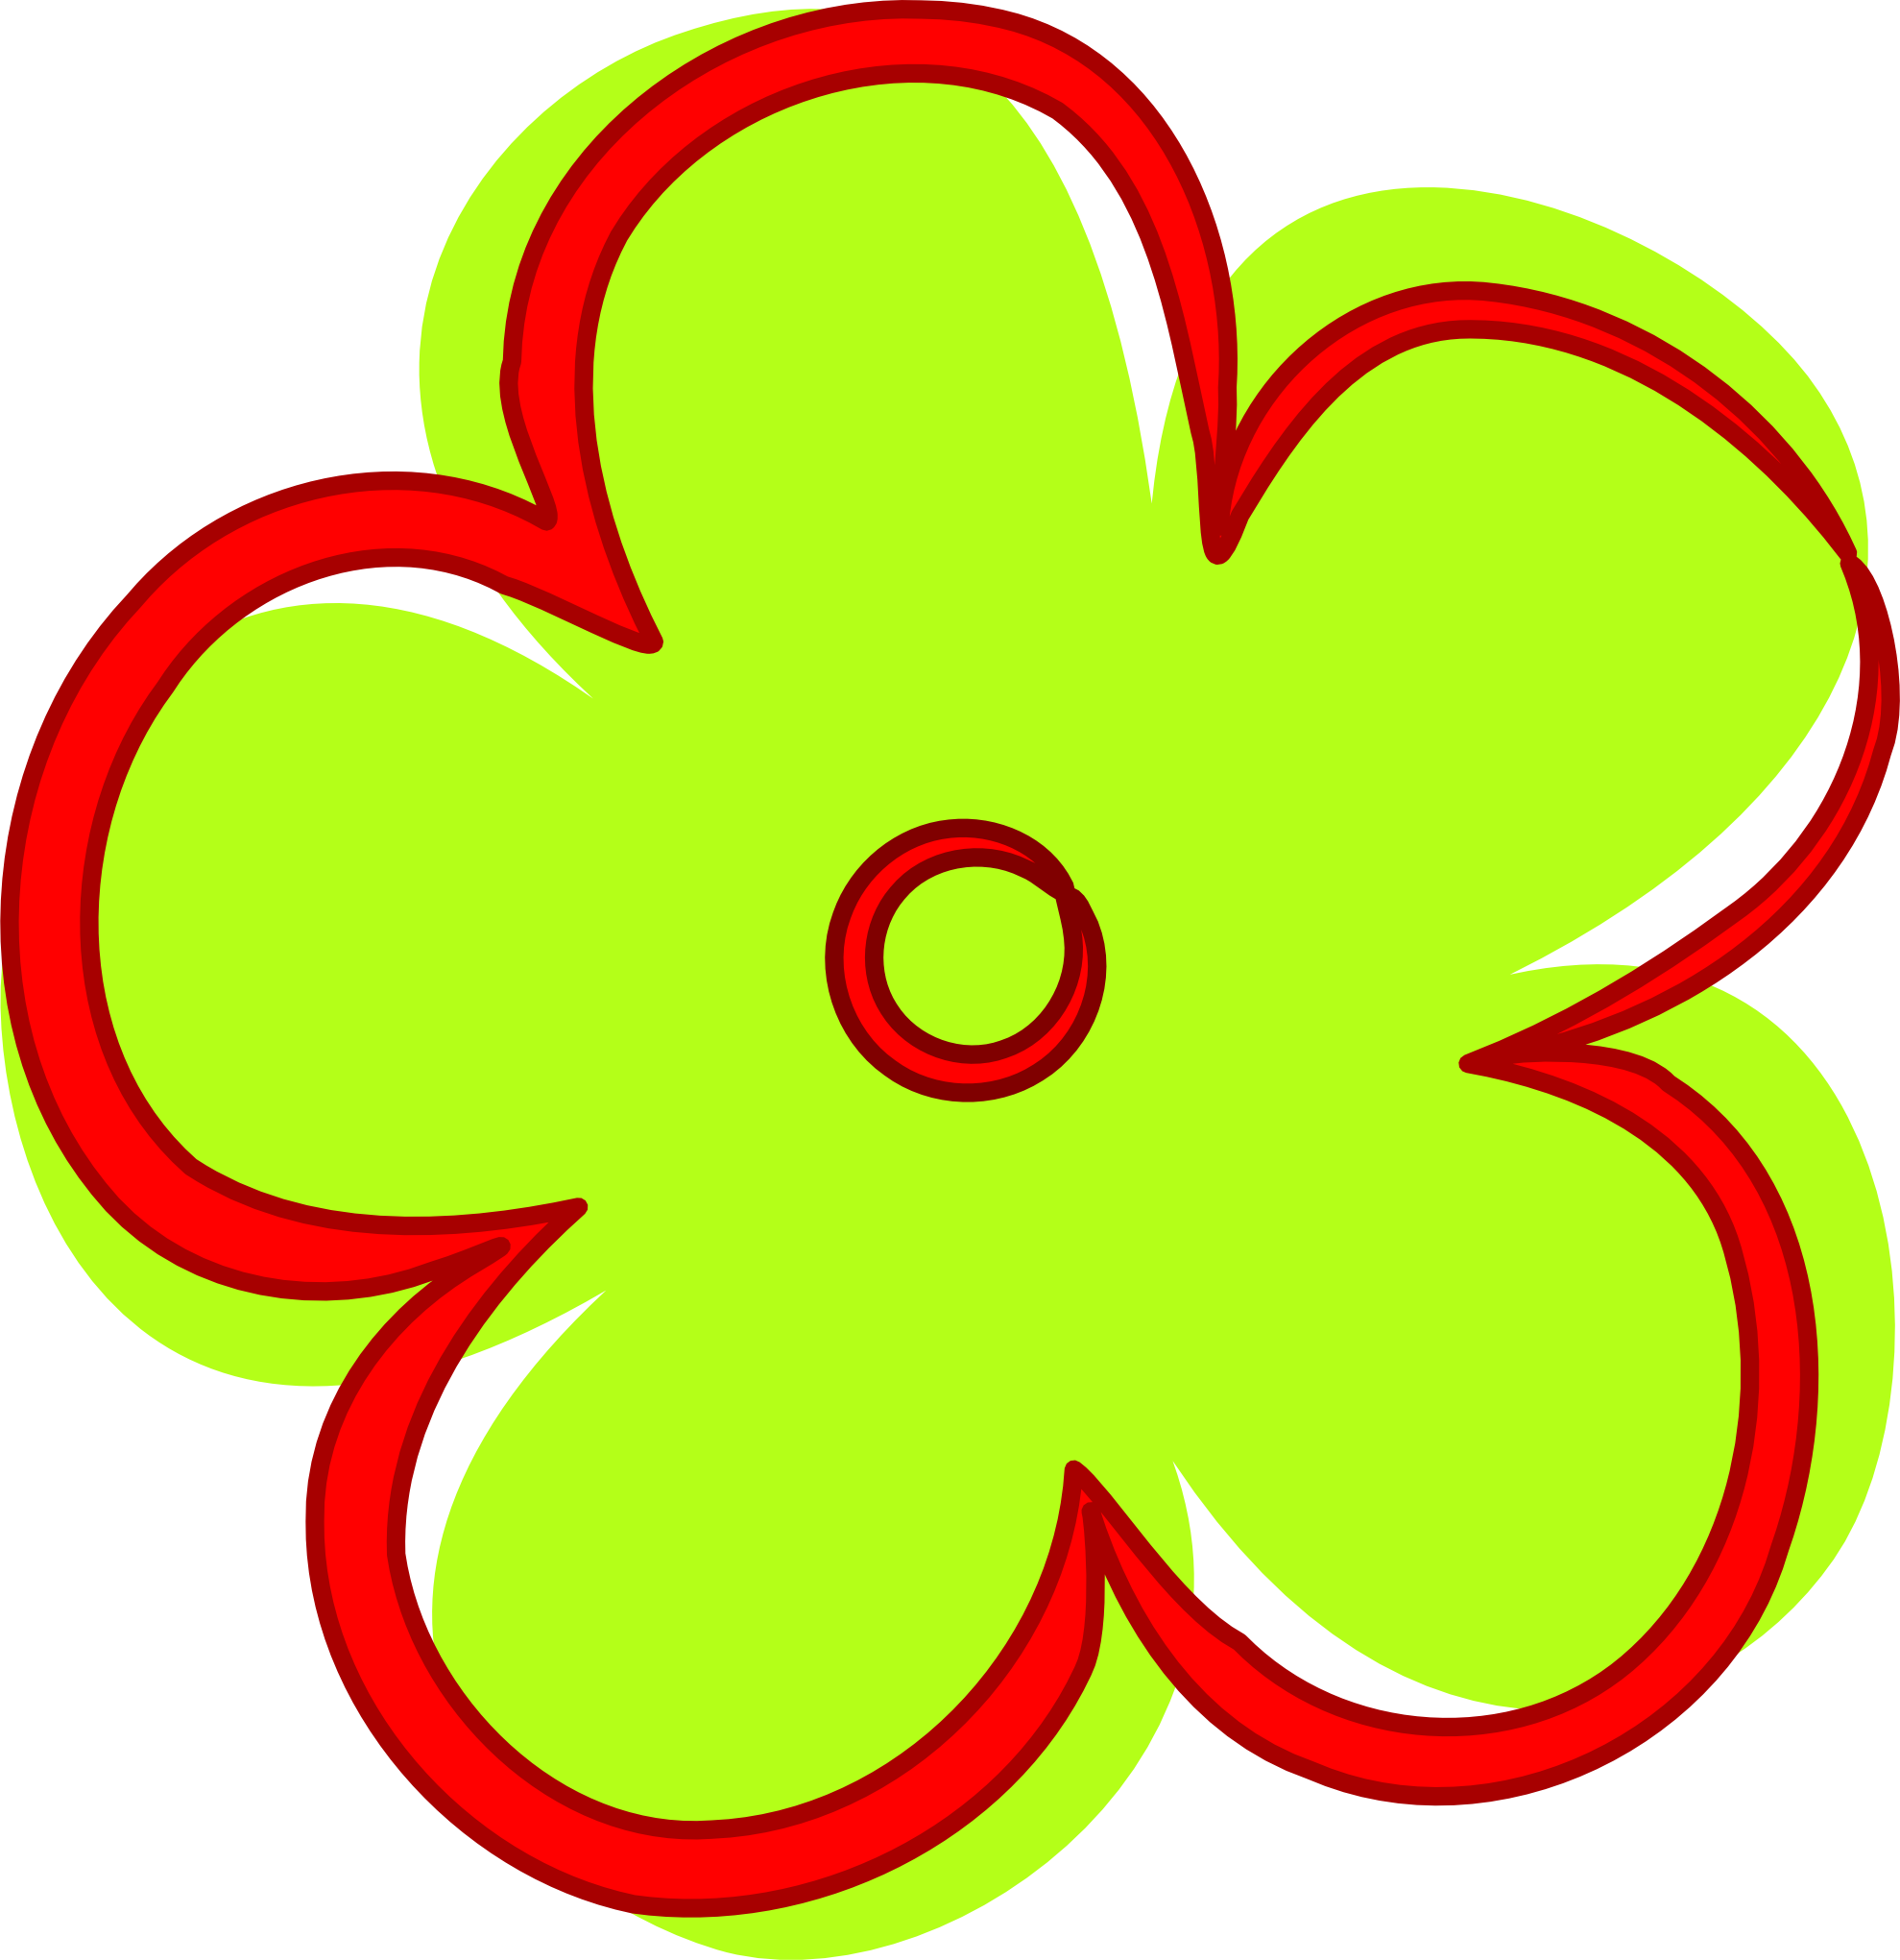 Trends For > April Showers Bring May Flowers Clip Art - Cliparts.co